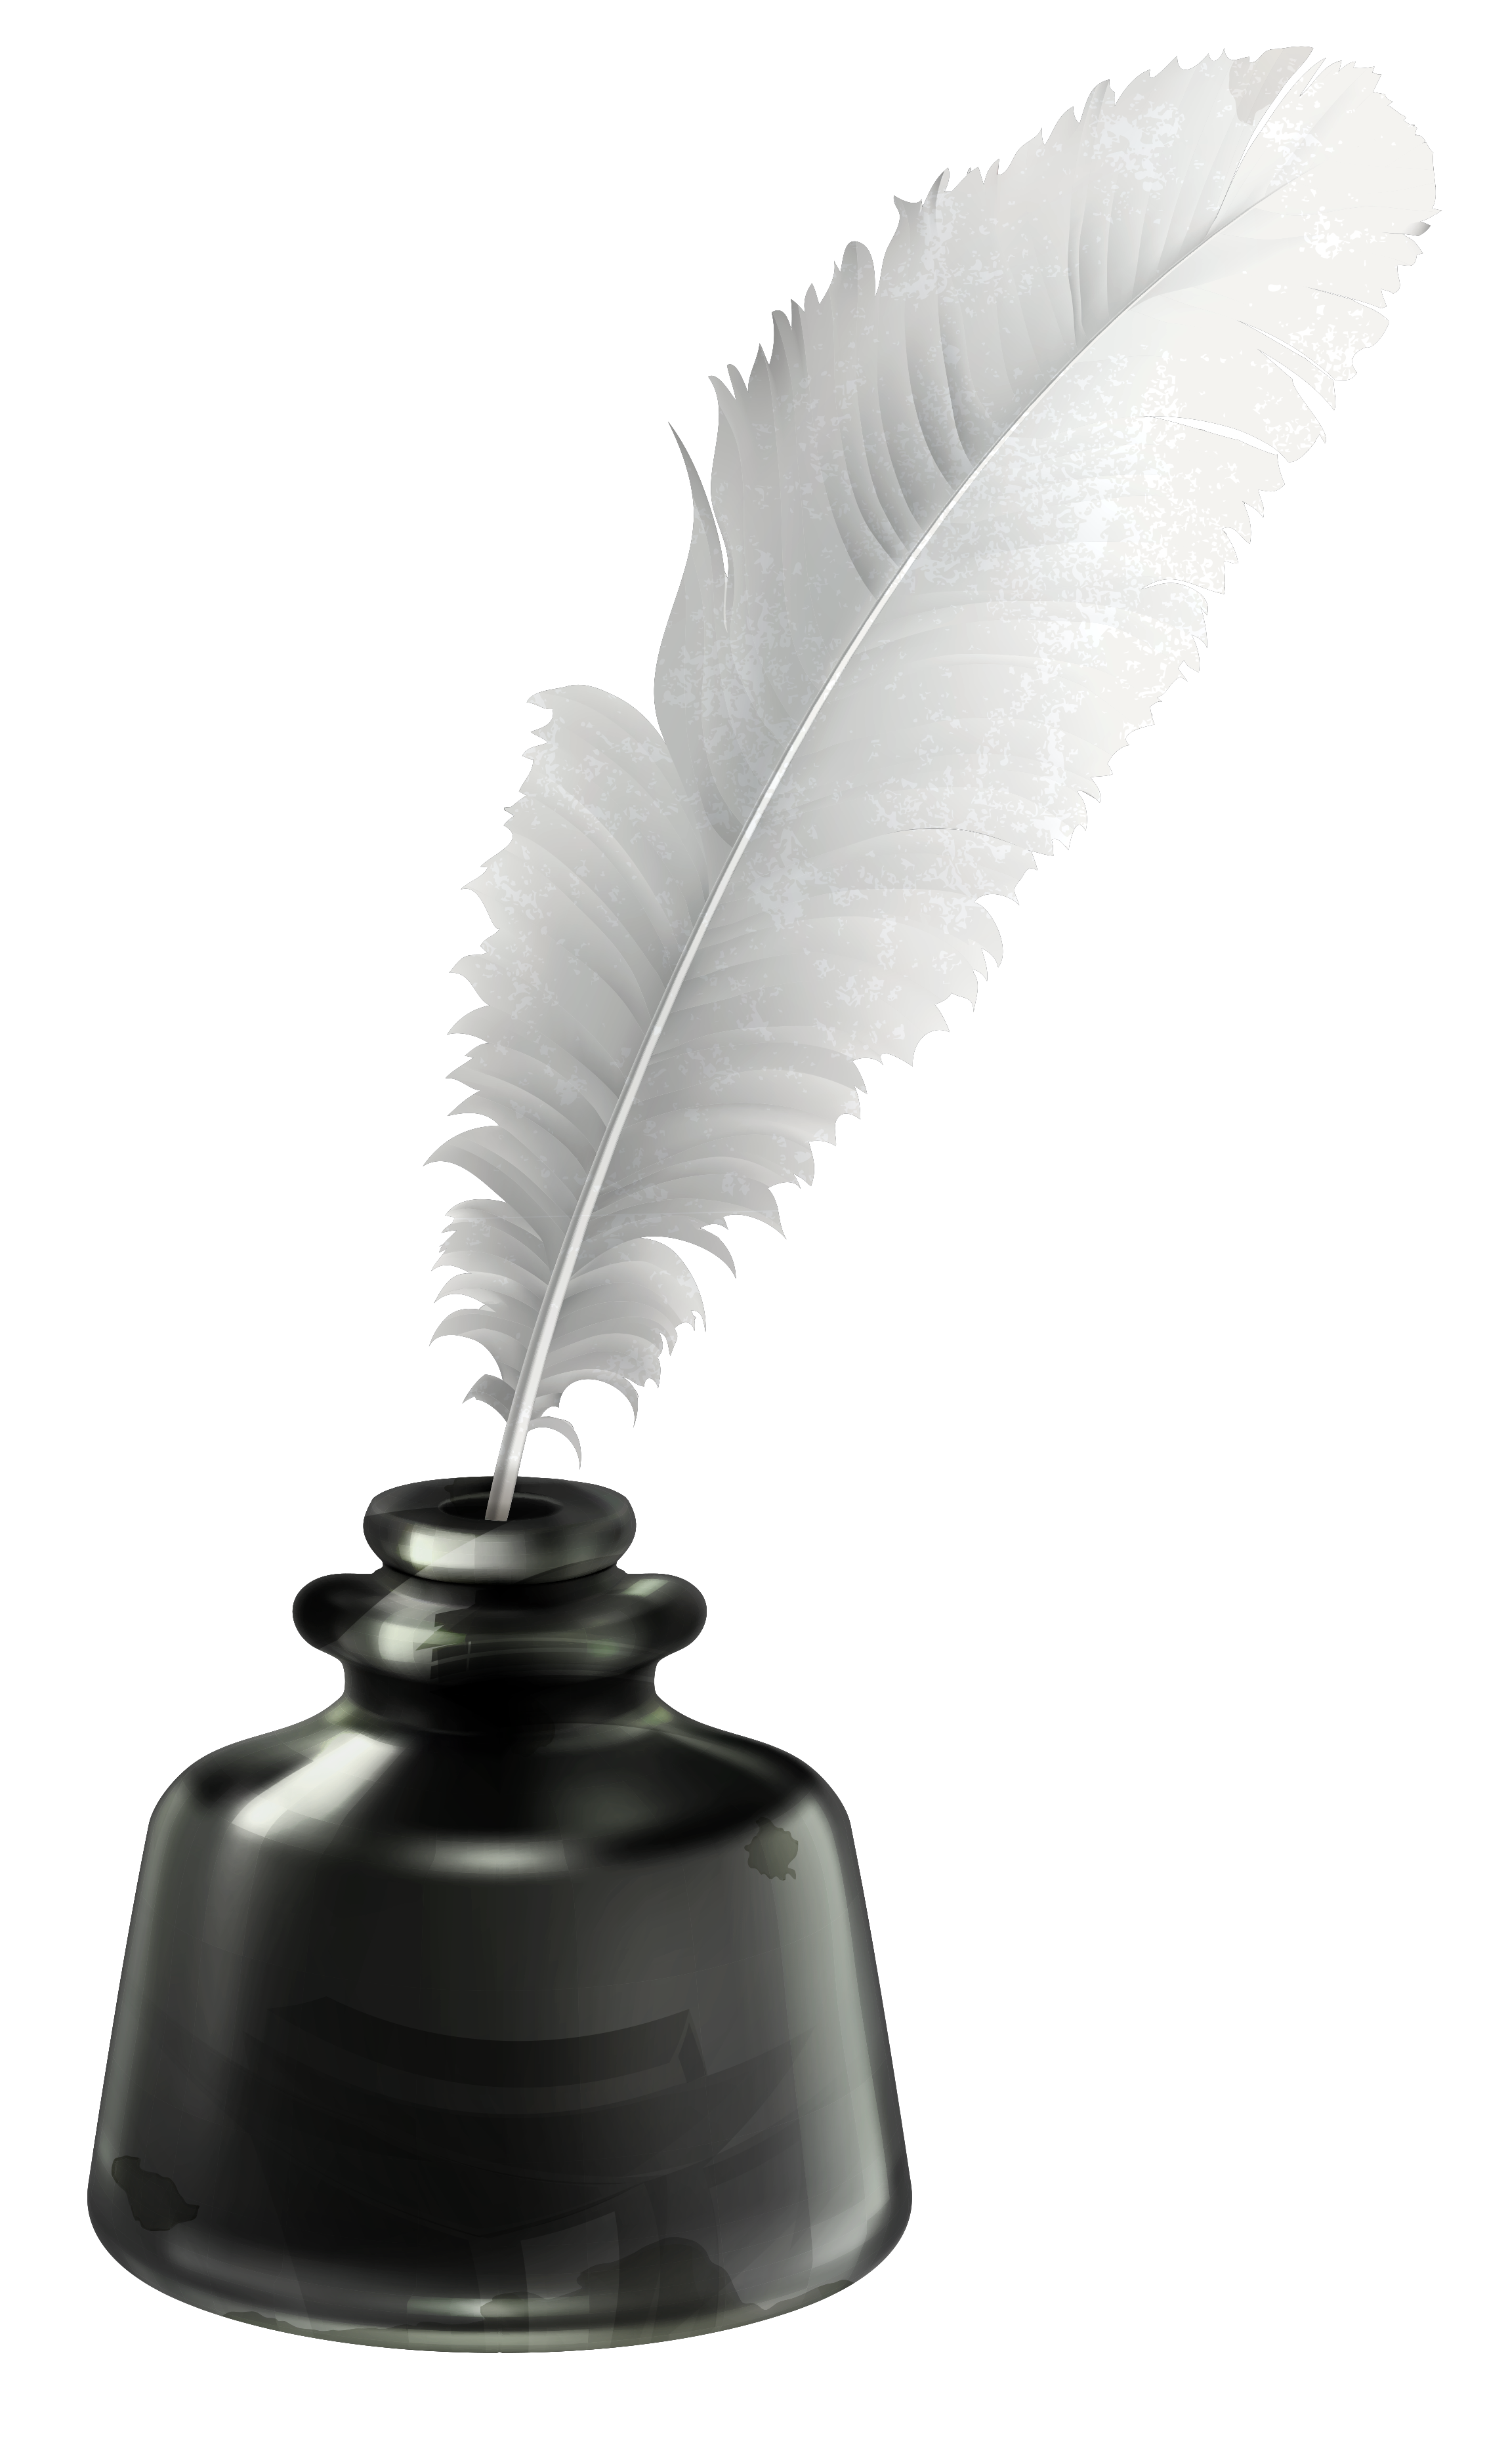 Quill and Ink Pot Transparent PNG Vector Clipart.